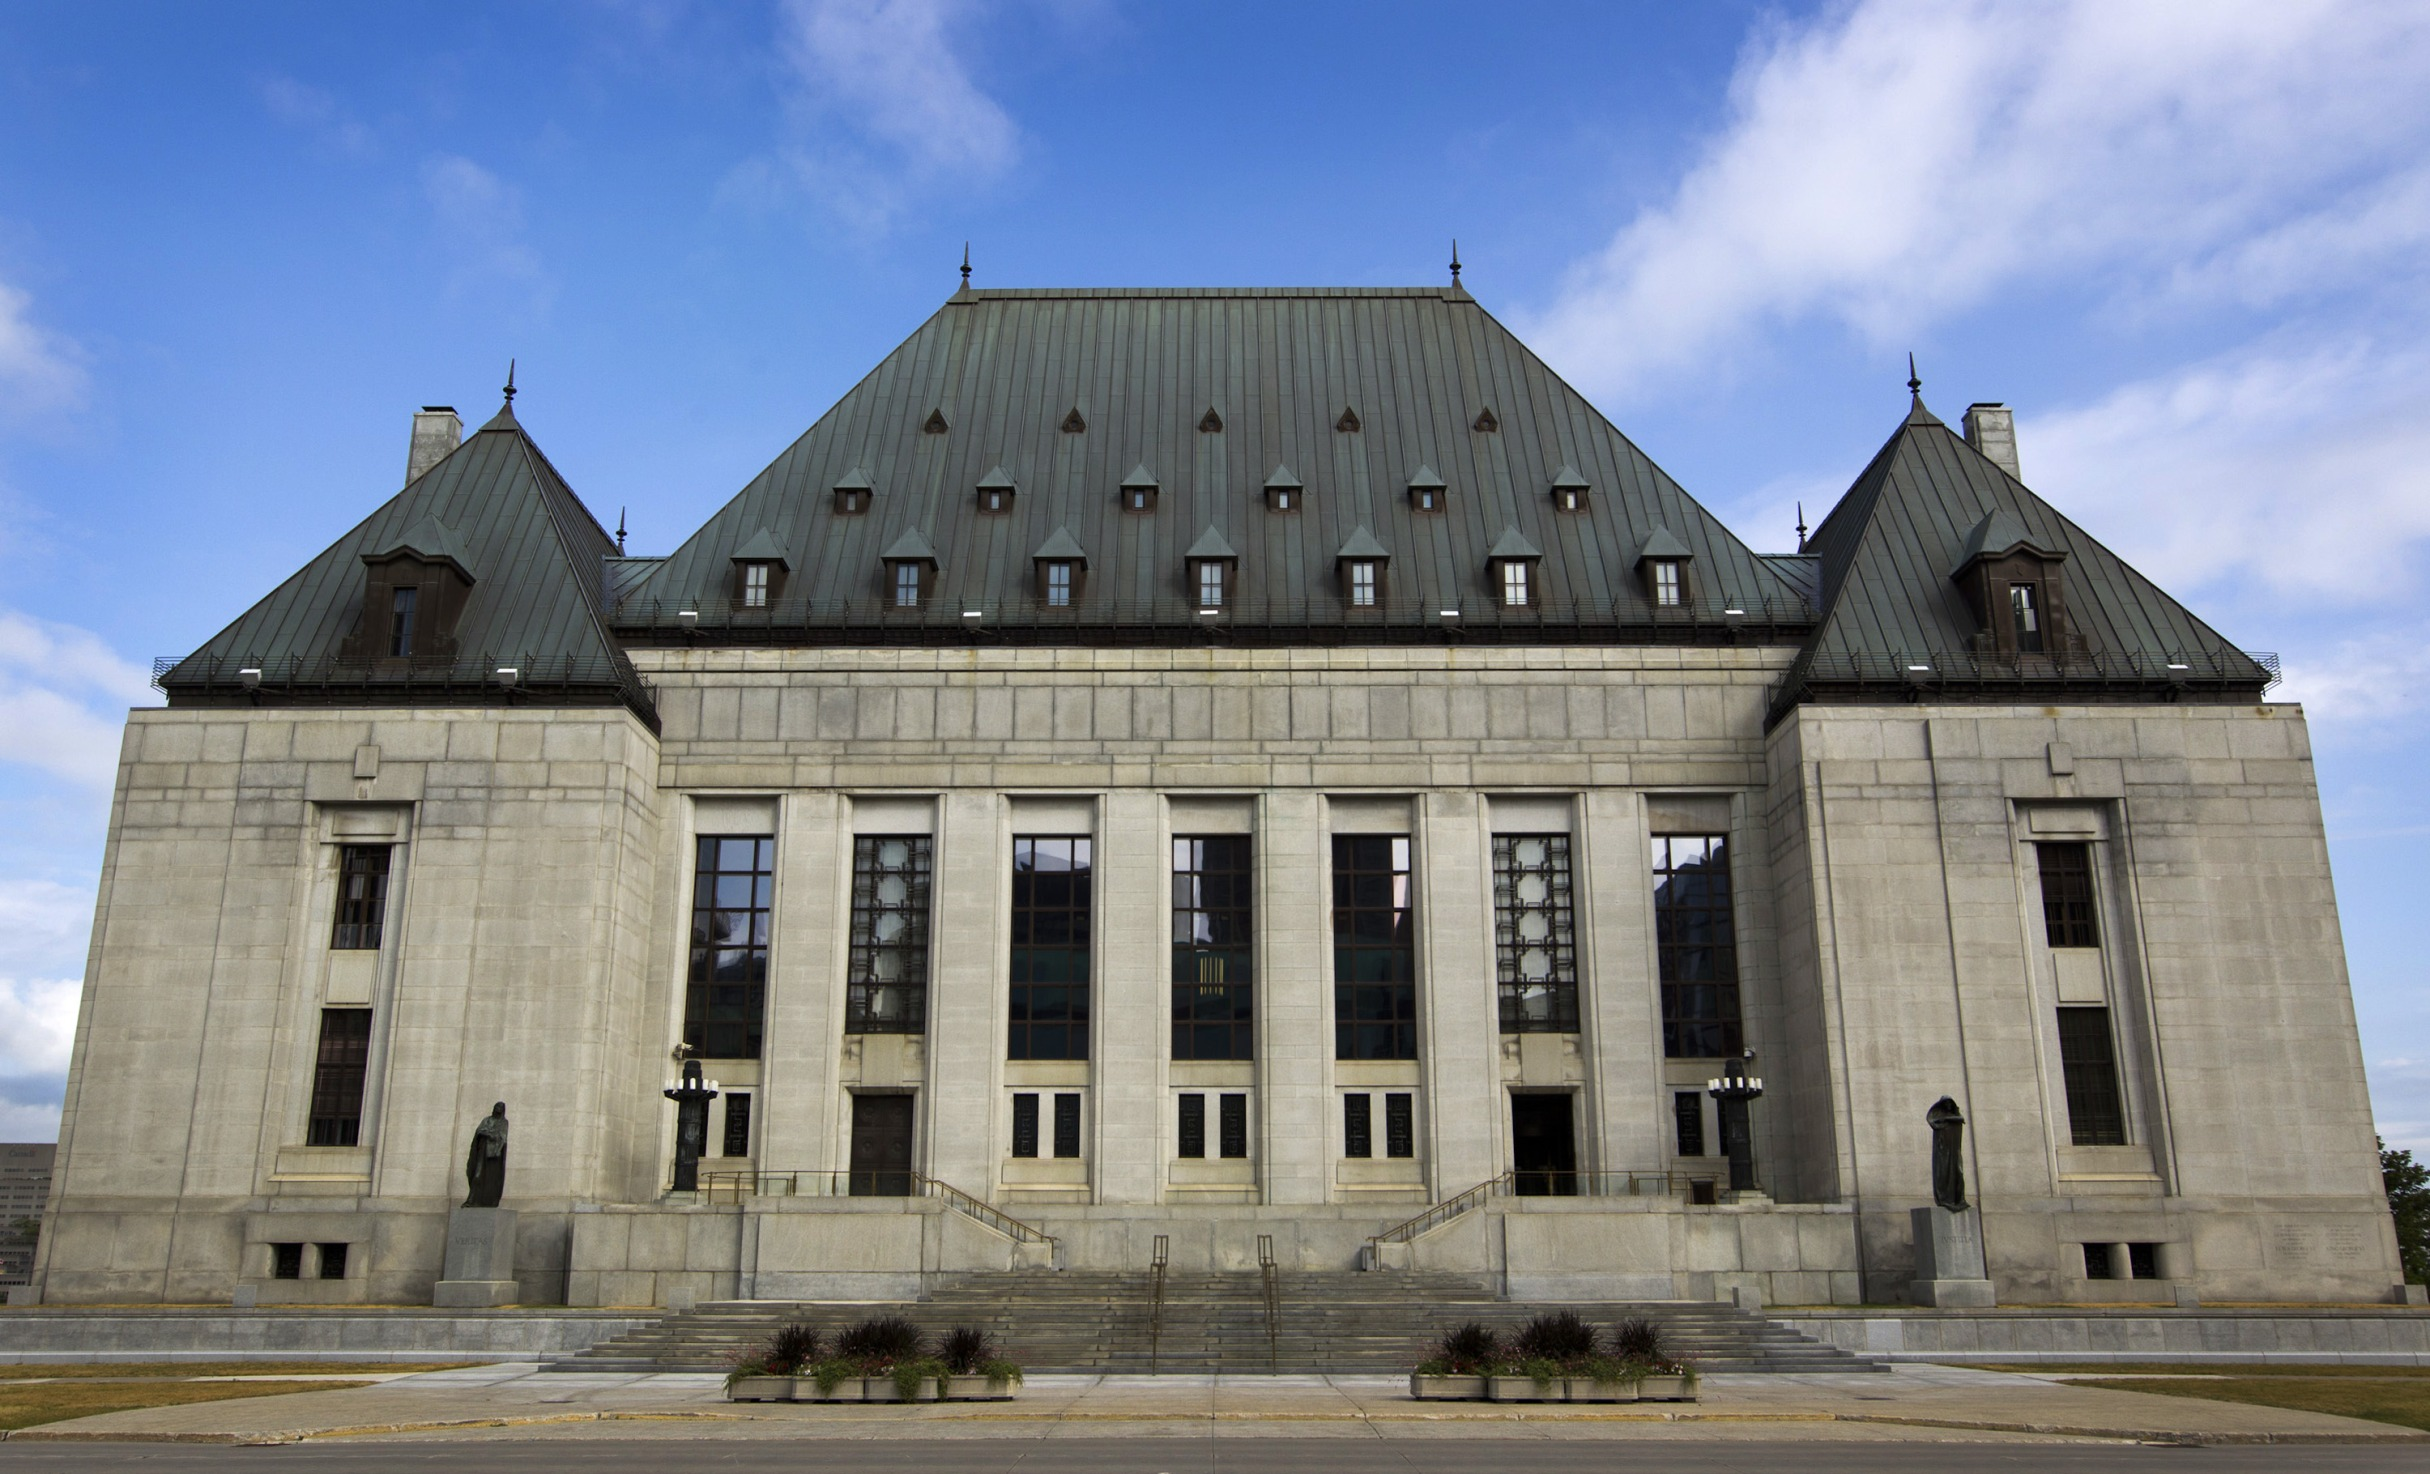 relates to Trudeau's Carbon Tax Upheld by Top Court, Cementing Green Agenda